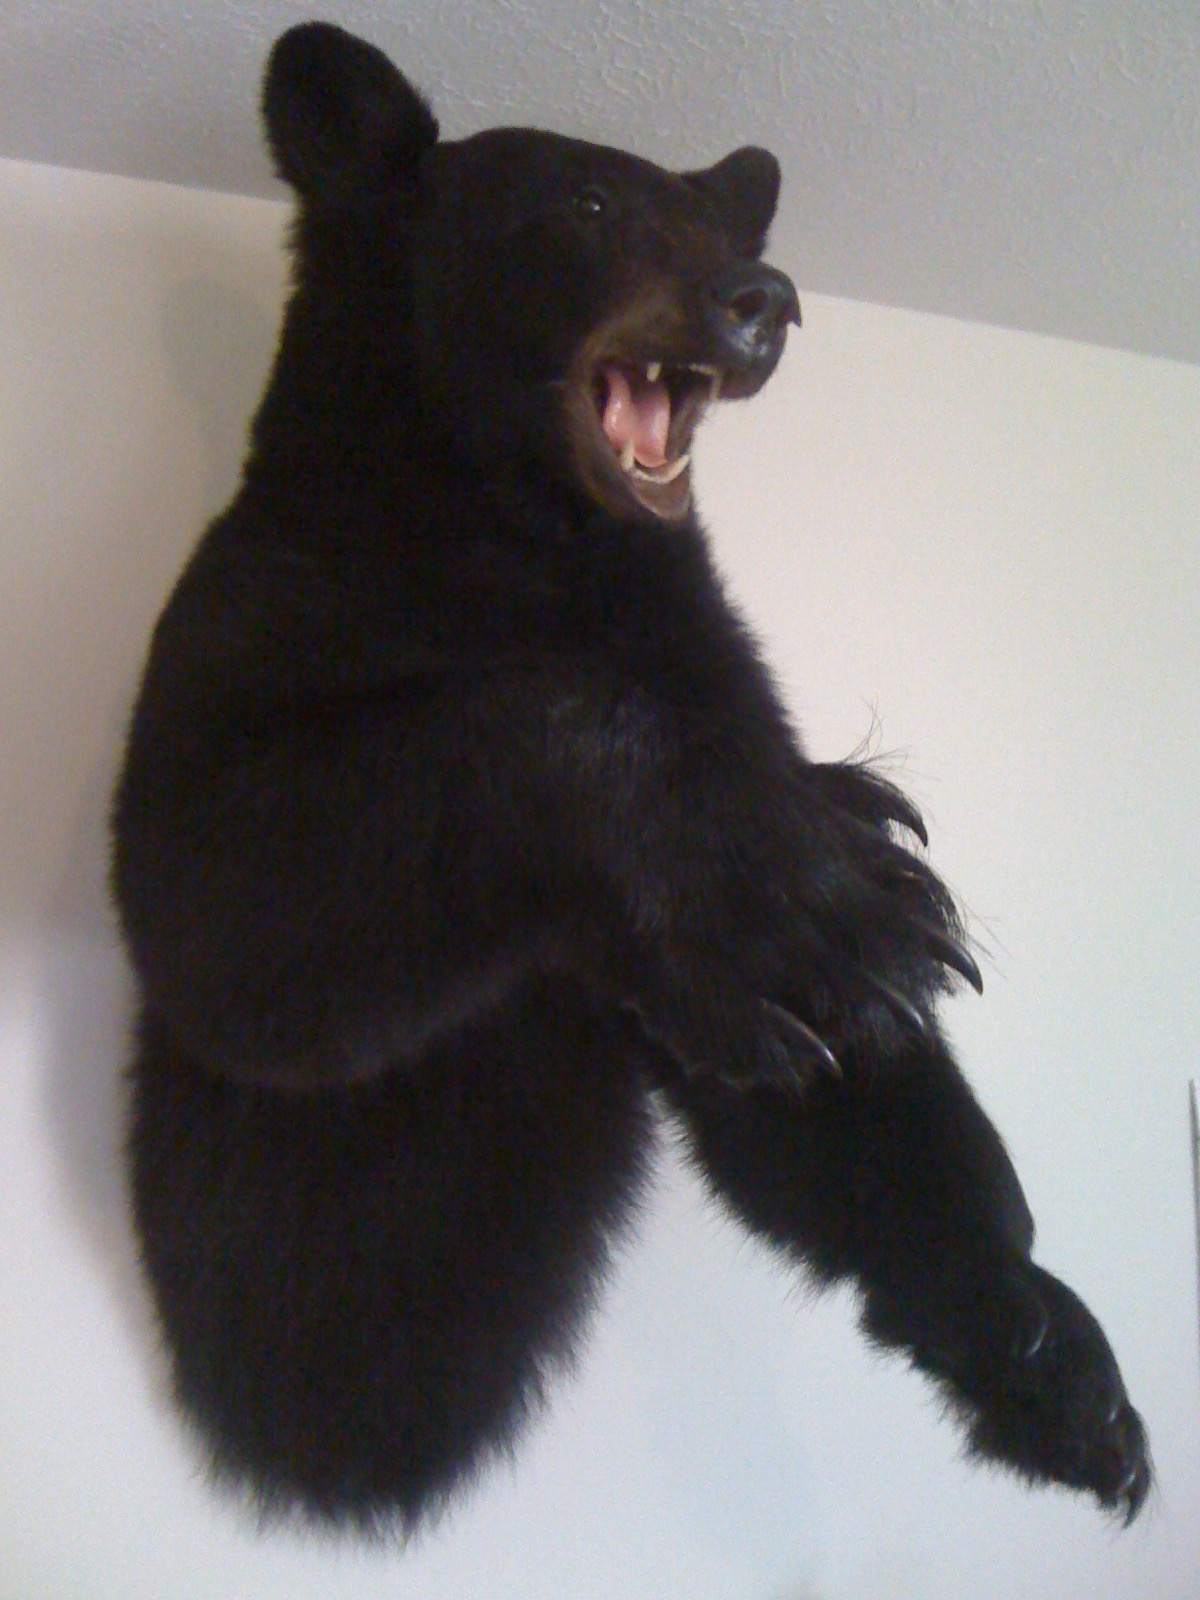 From Belly To Head With Teeth And Claws Coming At You Not A Typical Black Bear Mount But It Turned Out Cool My Young Daughter Wouldn T Come Into